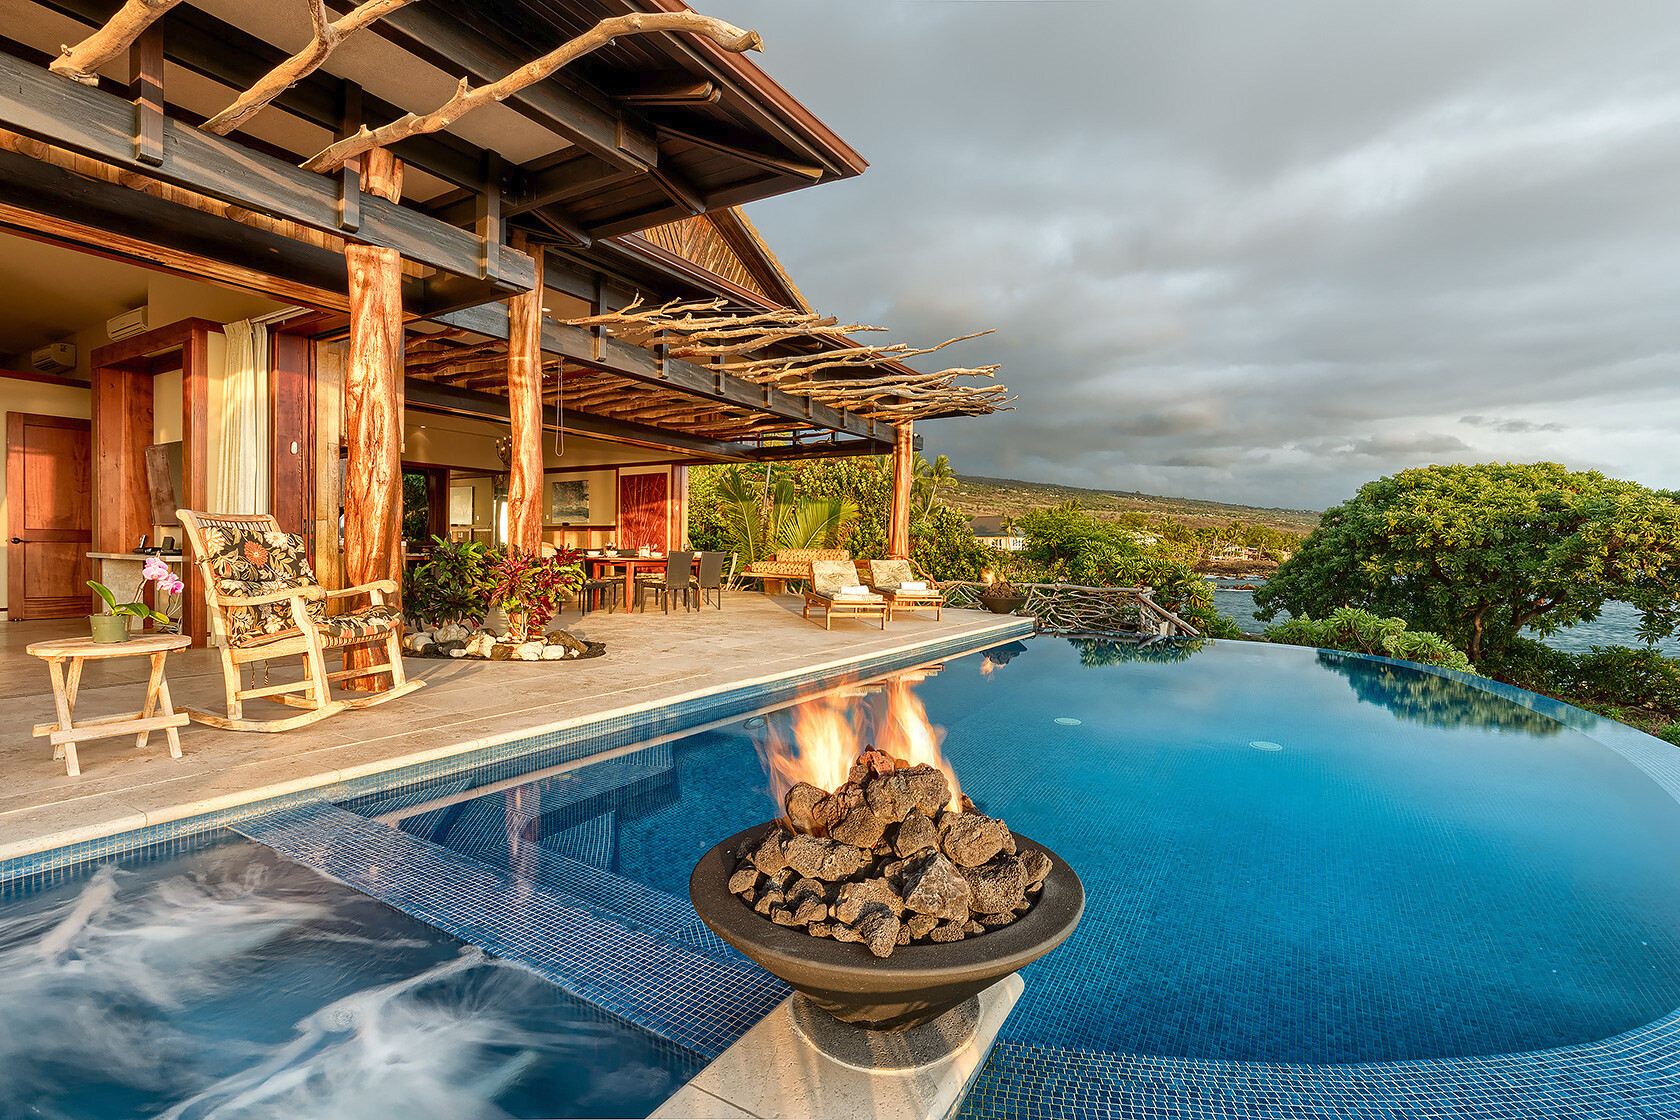 Architectural Photography of Luxury Pools